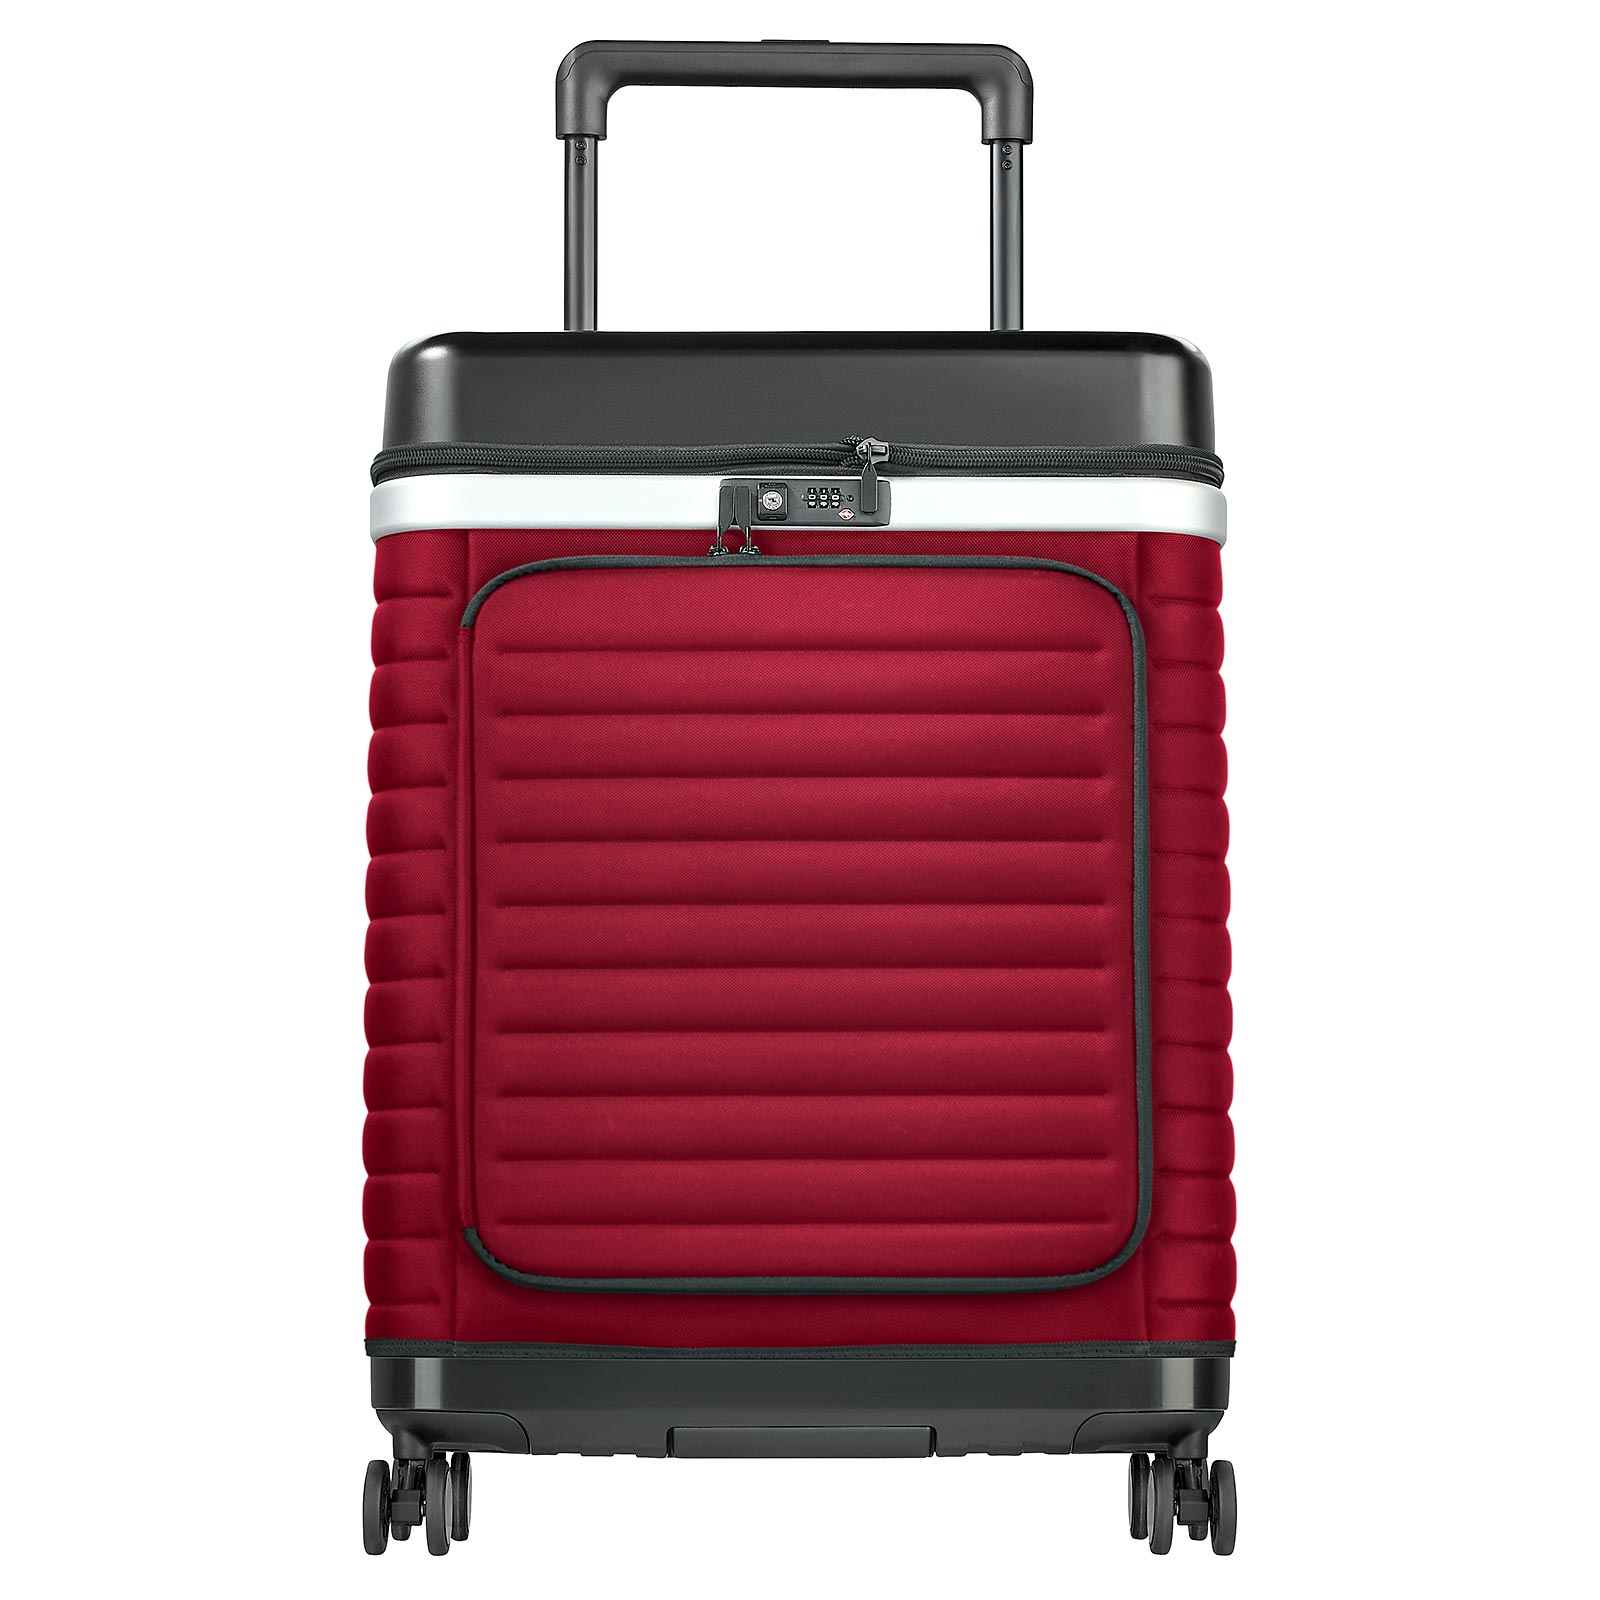 Pull Up Case Reisekoffer Suitcase Trolley 76 cm 4 Rollen 87 l - Rot CAP-RED-L